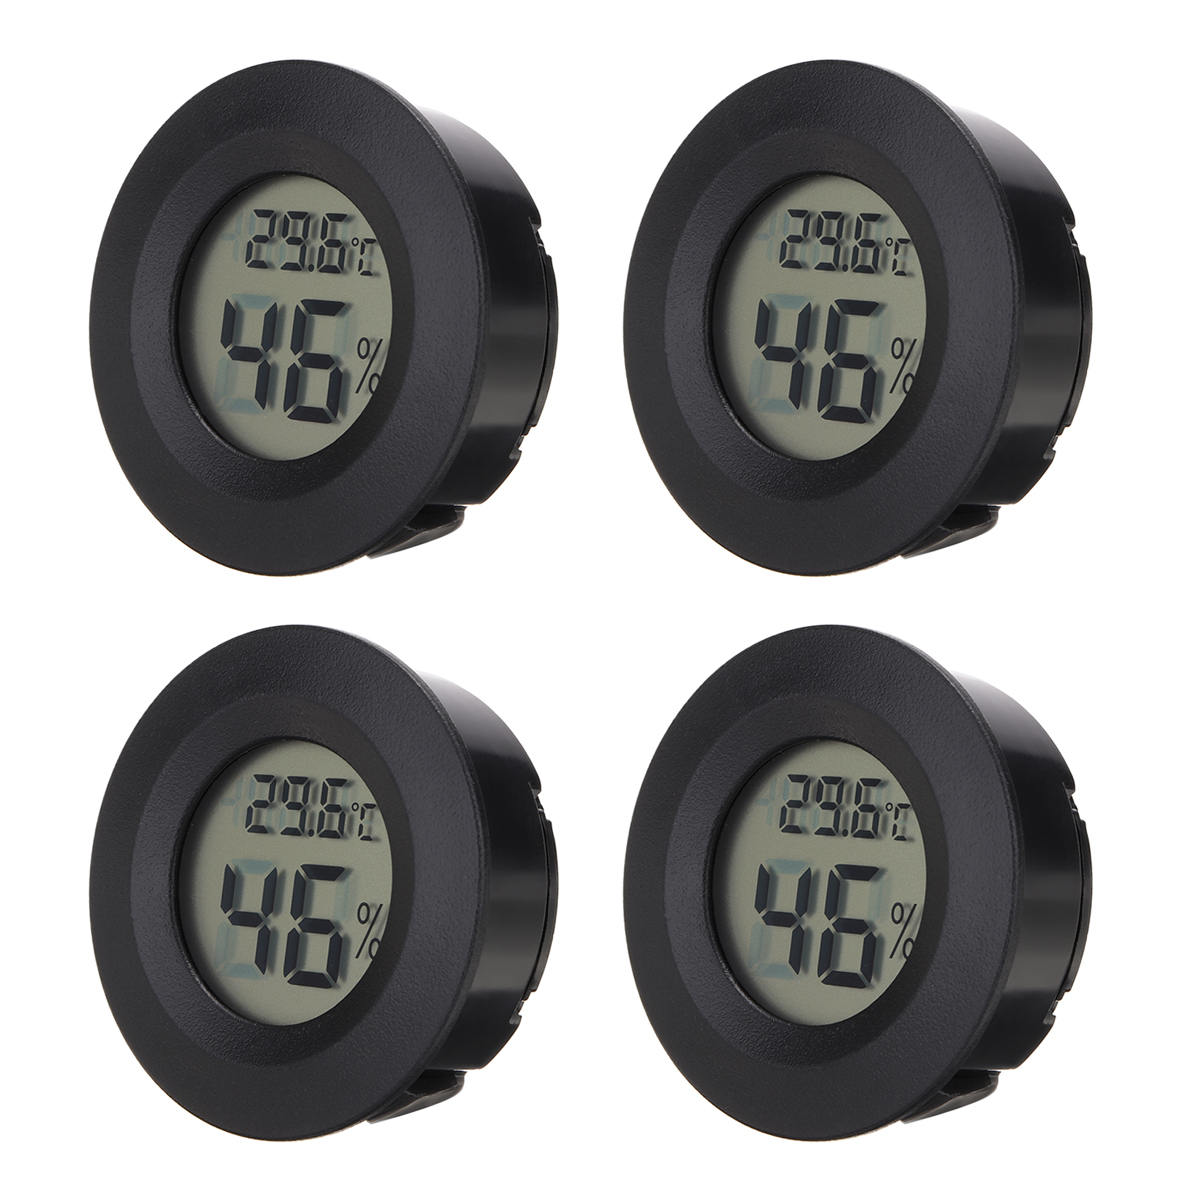 4 stücke Genaue Indoor Zimmer LCD <font><b>Digital</b></font> <font><b>Thermometer</b></font> <font><b>Hygrometer</b></font> Thermo-<font><b>Hygrometer</b></font> Temperatur Feuchtigkeit Meter Messen image